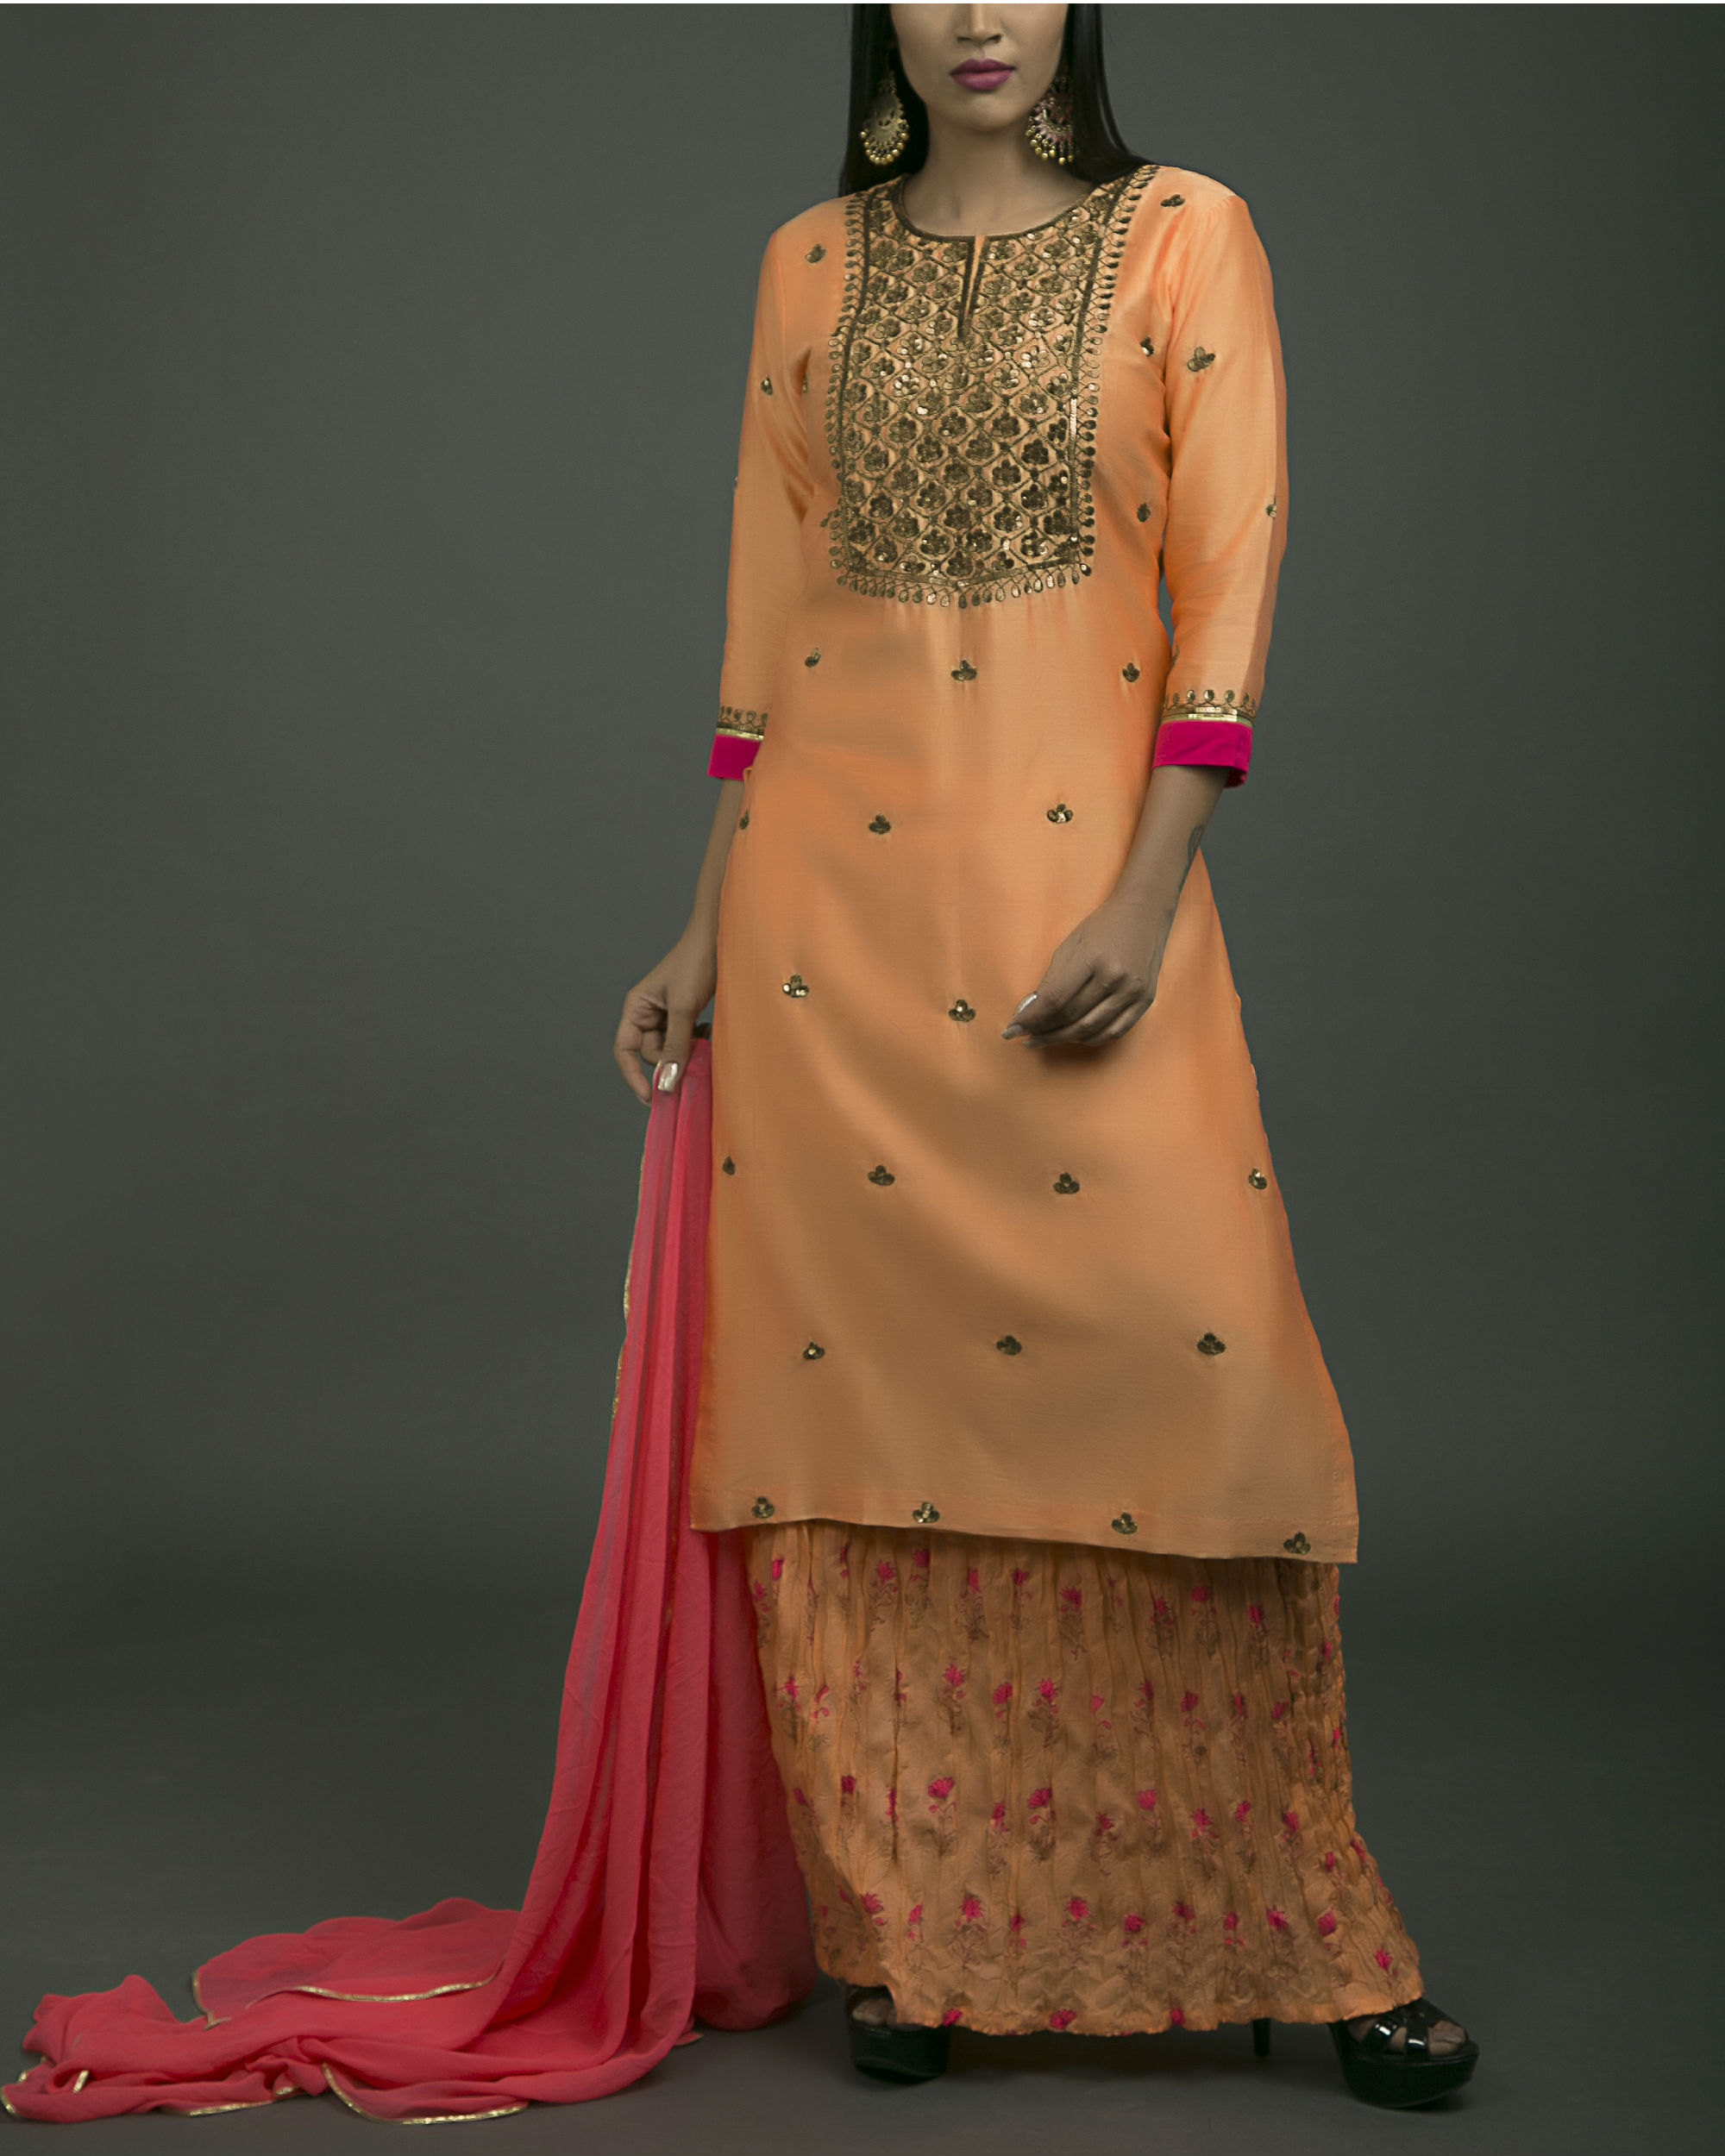 Gulaabi baagh embroidered kurta set with orange dupatta